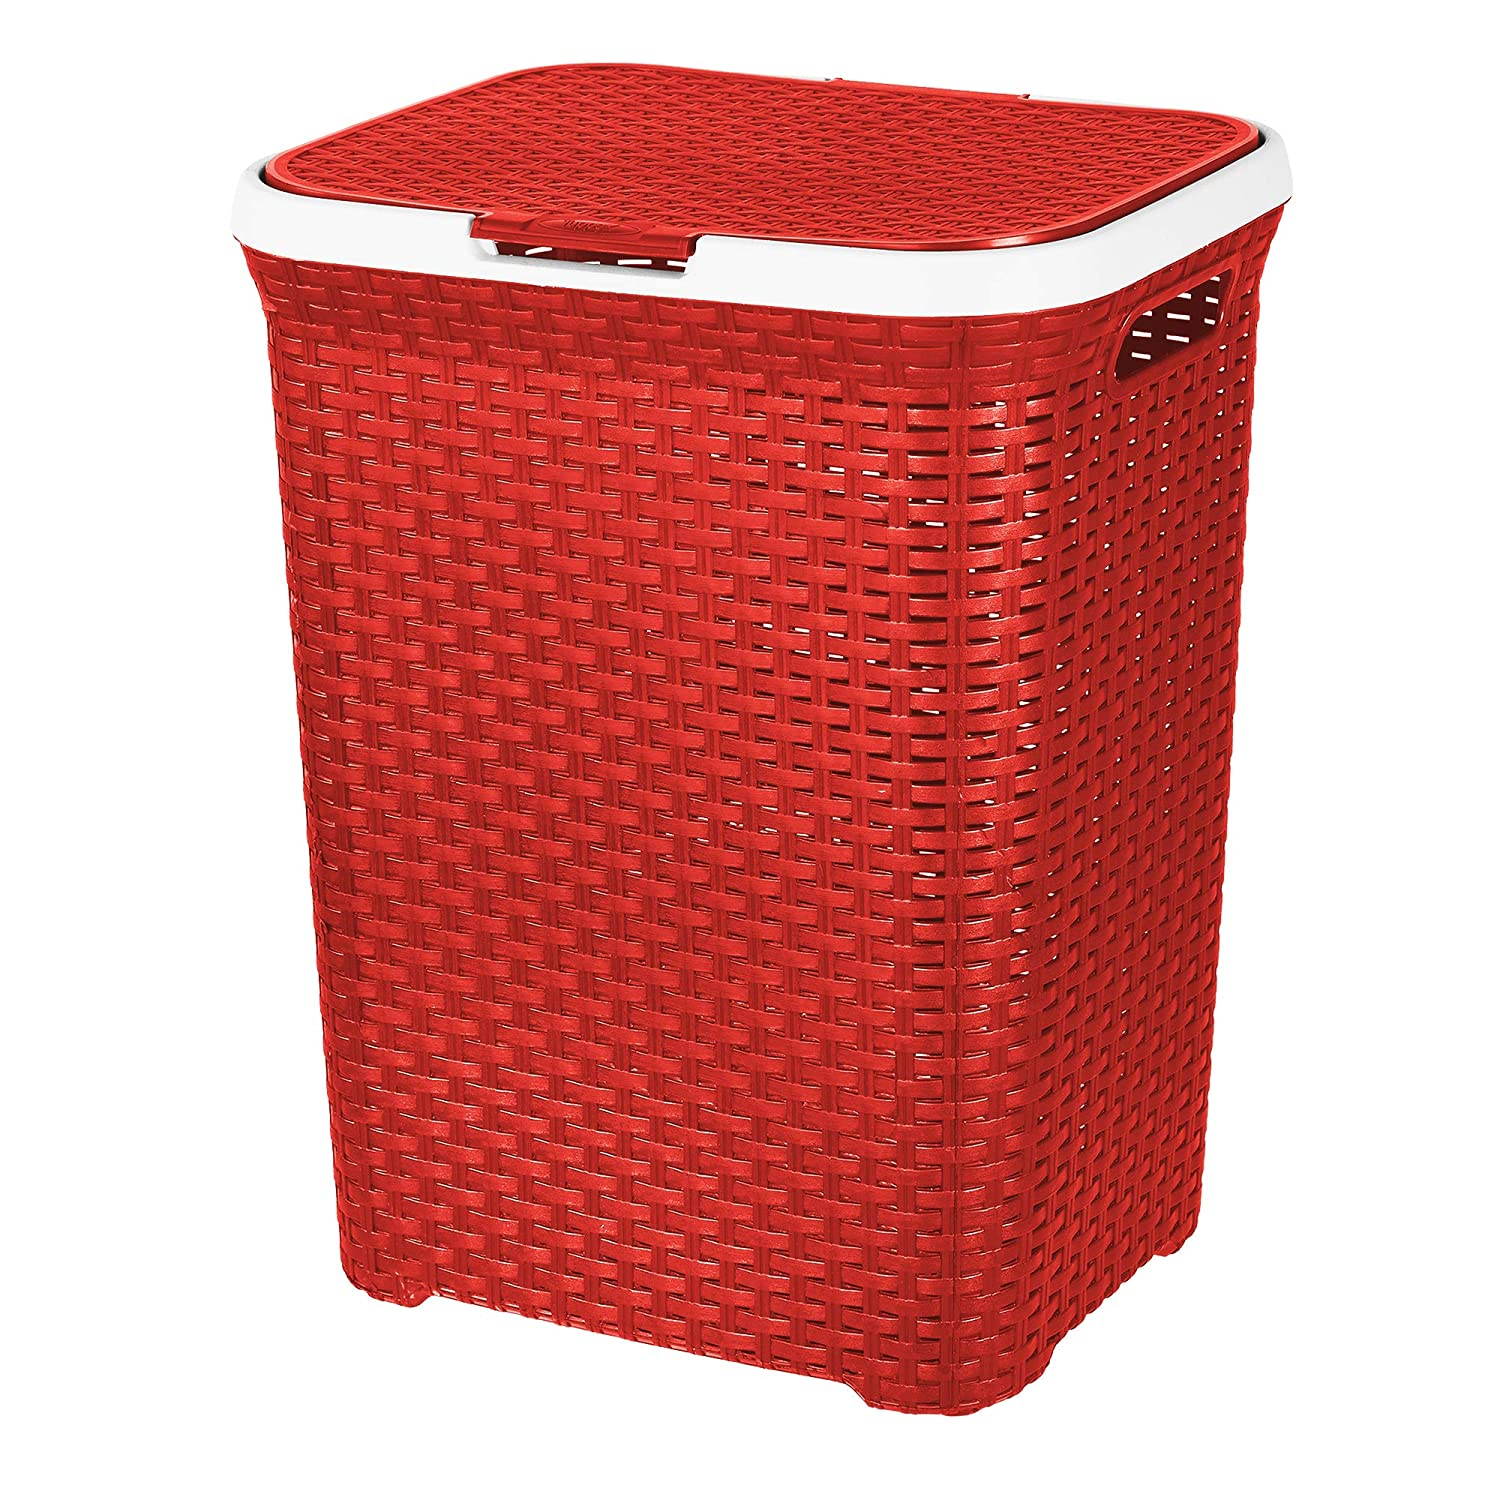 Evelyn Living 65 Litre Plastic Laundry Basket Hamper Storage Rattan Look with Lid & Insert Handles (Lilac)